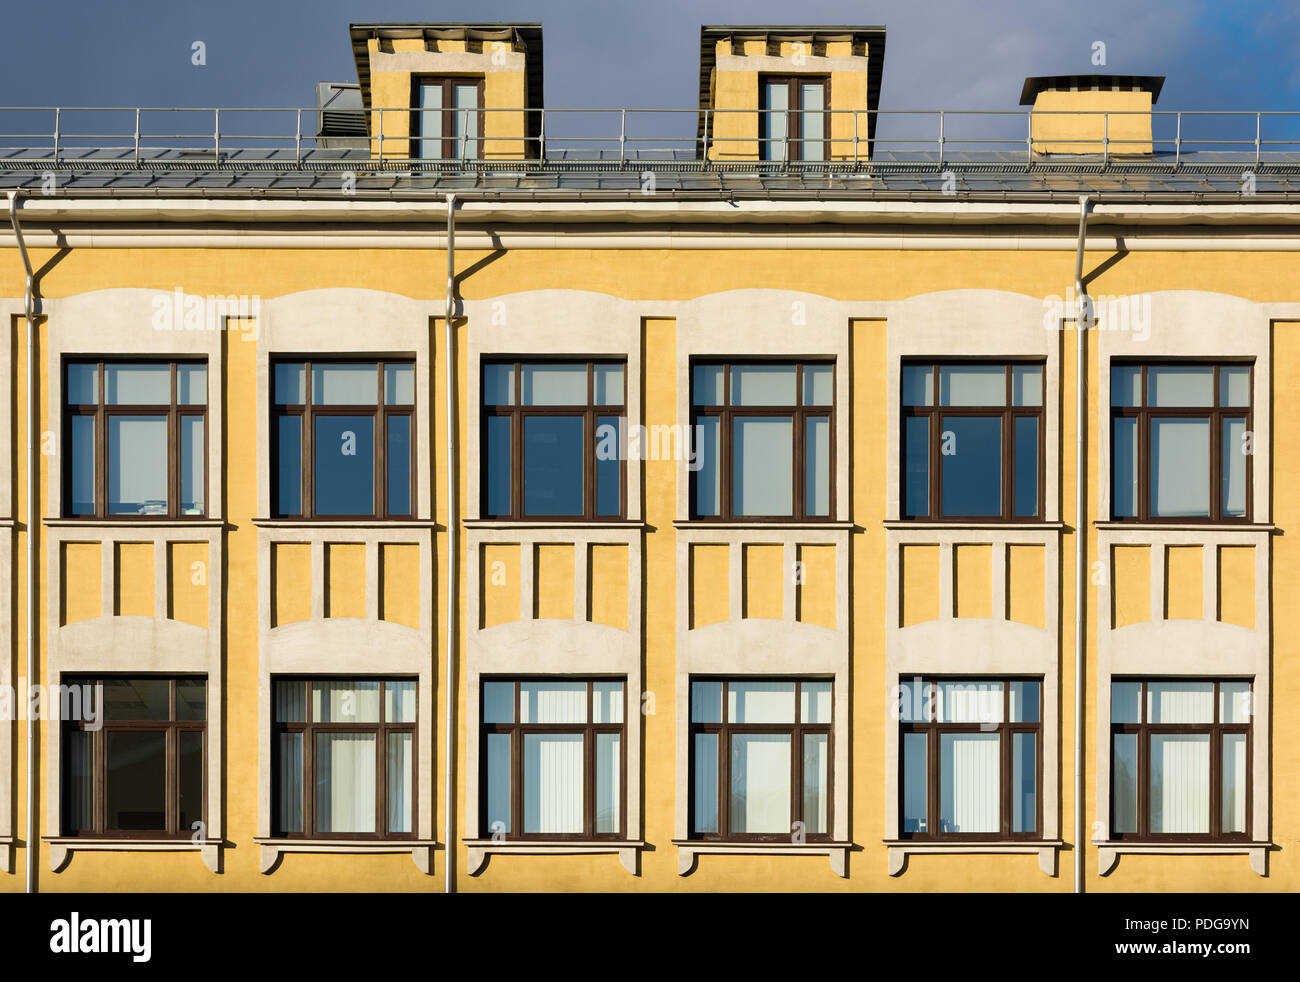 The facade of the old building with yellow walls and white décor on ...